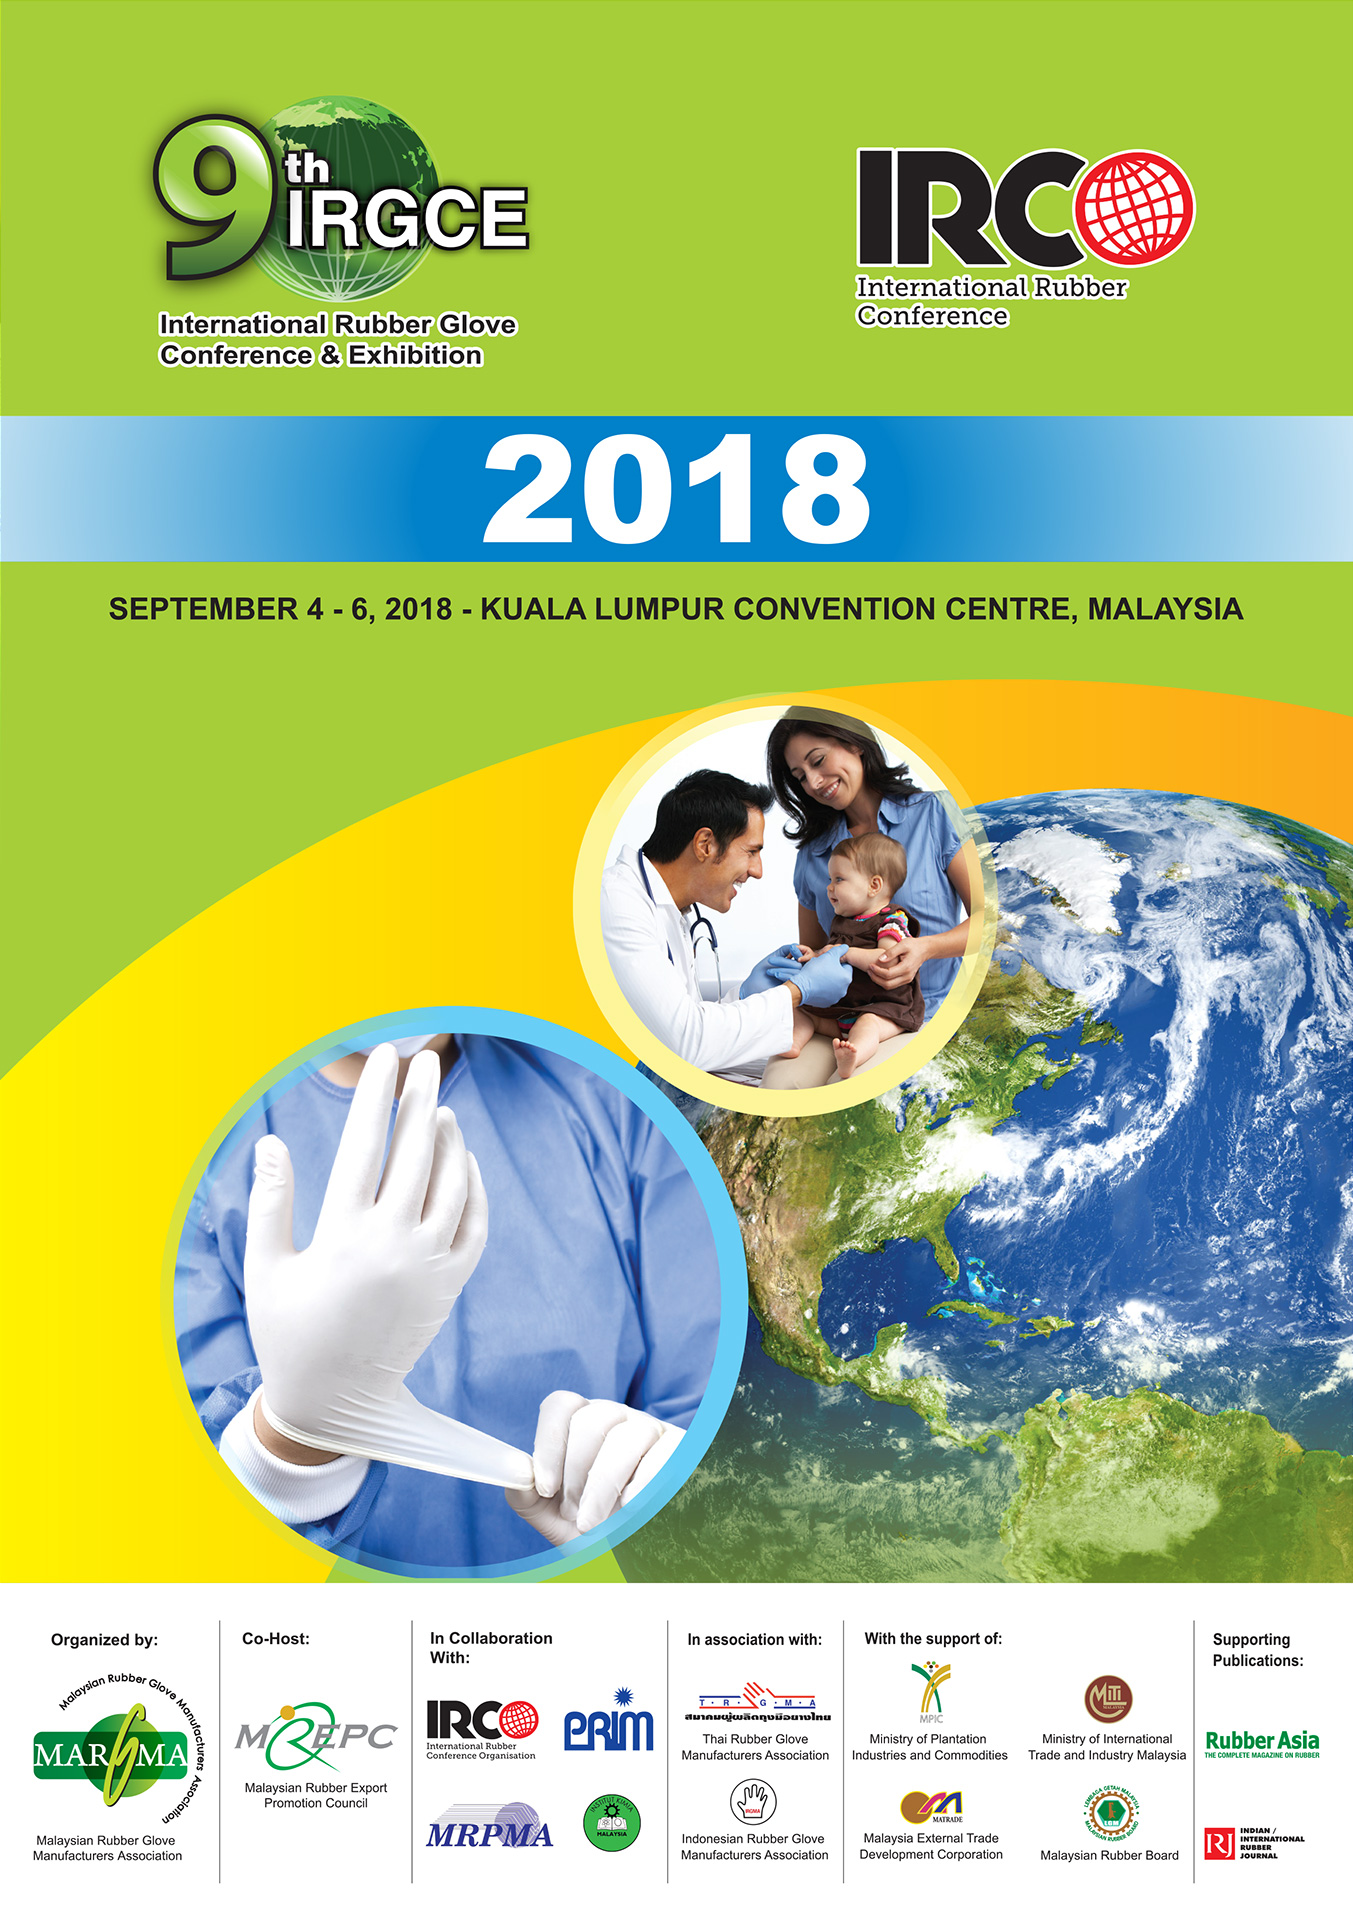 9th International Rubber Glove Conference and Exhibition 2018 – Margma